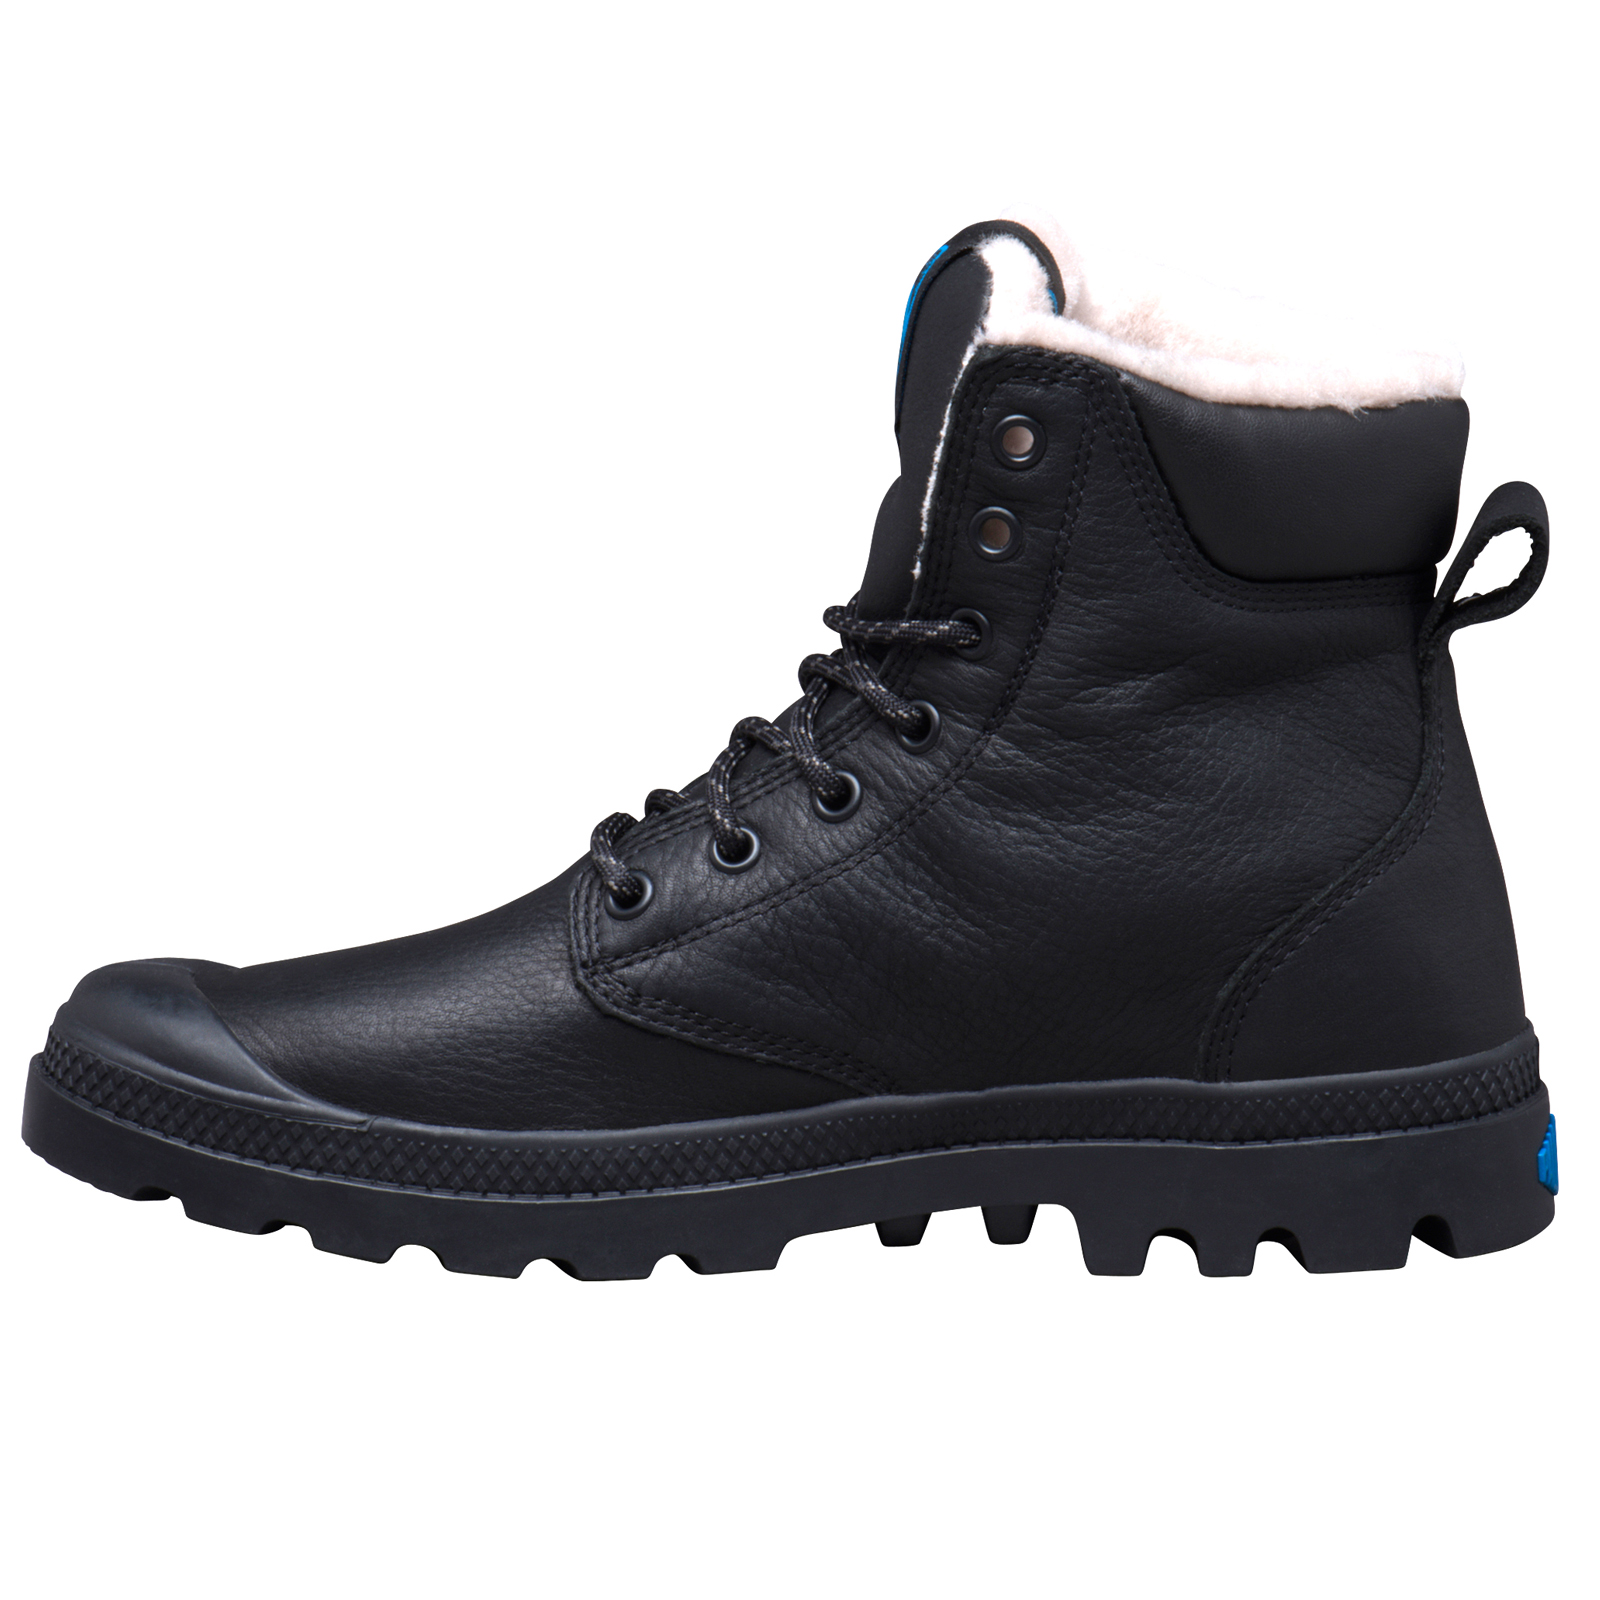 Palladium-Mens-Pampa-Sport-Cuff-Waterproof-Suede-Leather-Shoe-Wool-Lined-Boots thumbnail 10